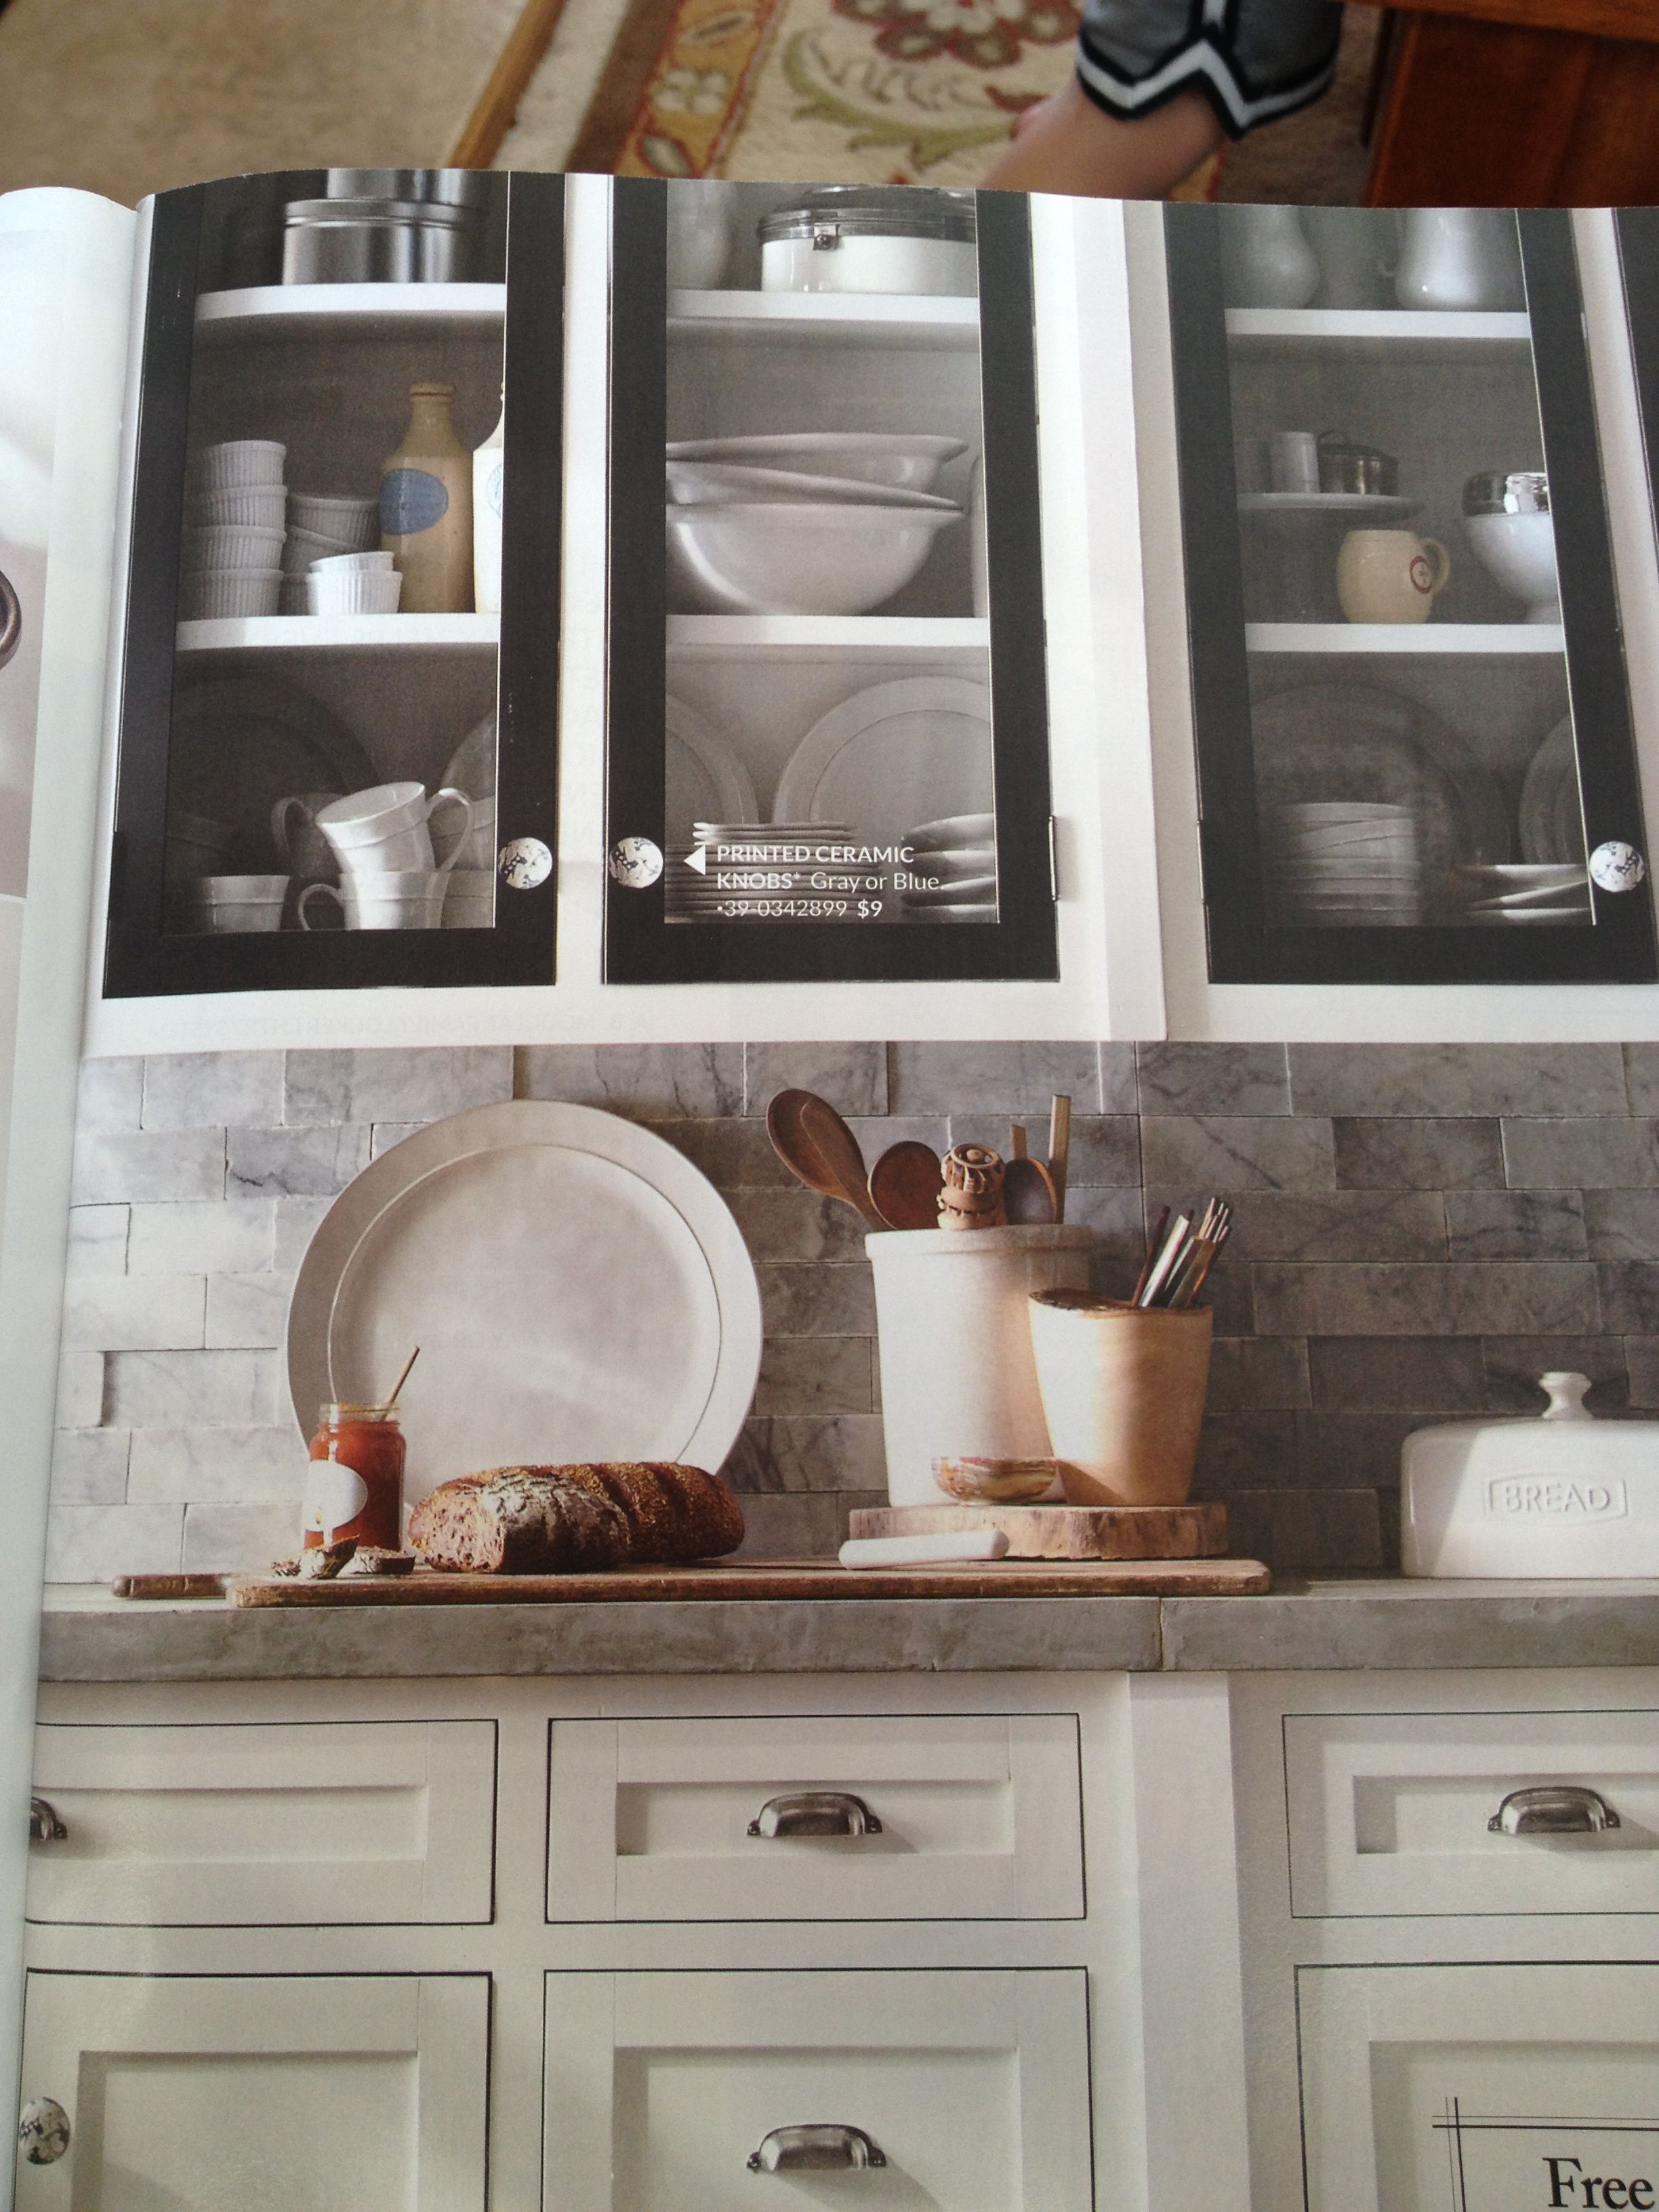 Pottery Barn Catalog Love The Black And Glass Insets With Images Home Kitchens